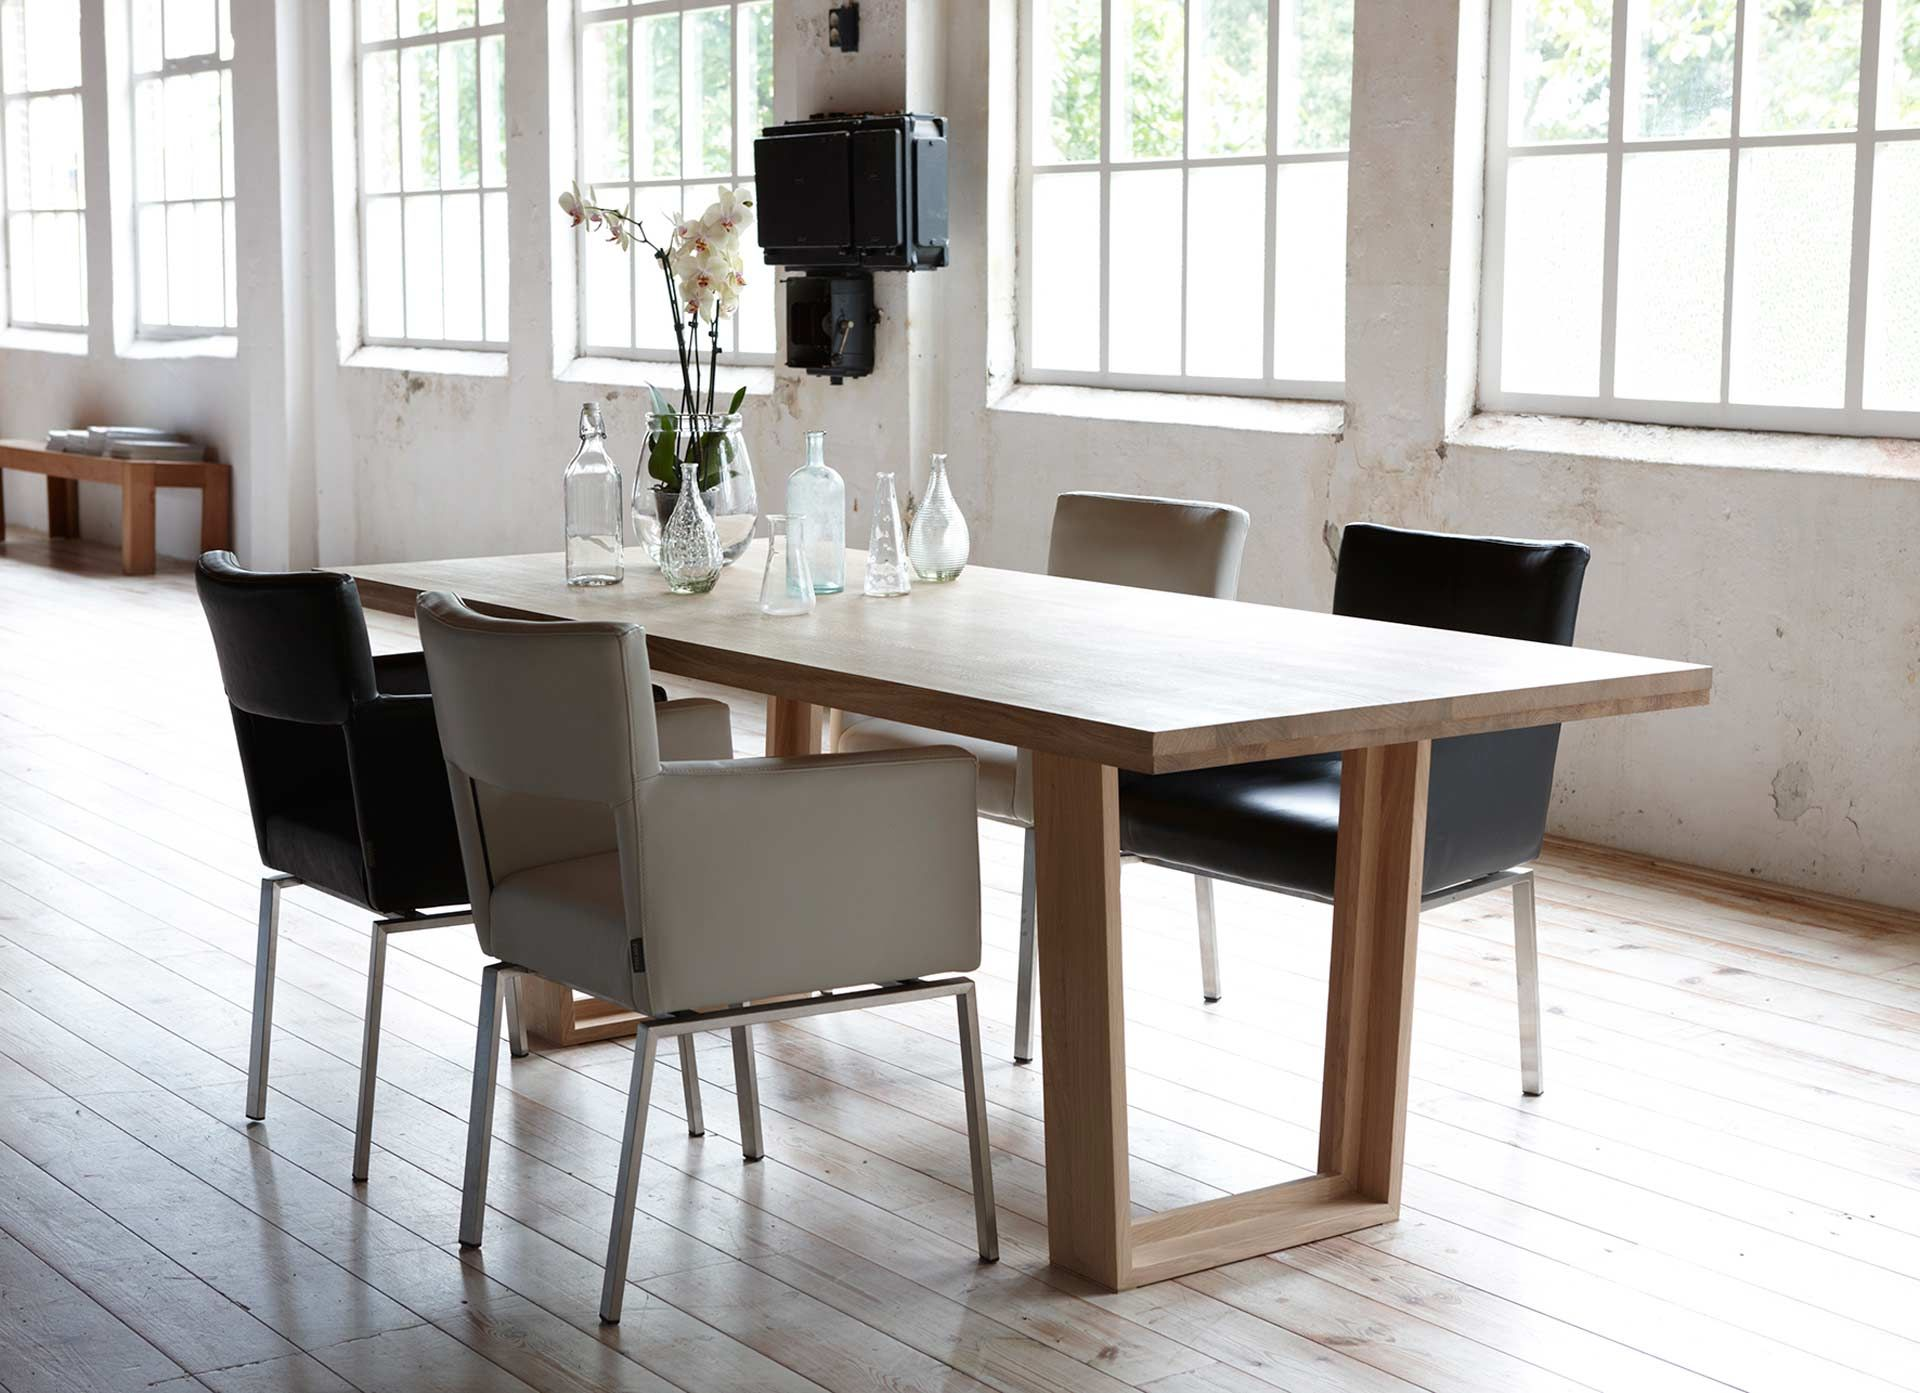 Dutch Design Tafel : A new slim dining table for the dutch brand foucault is out the